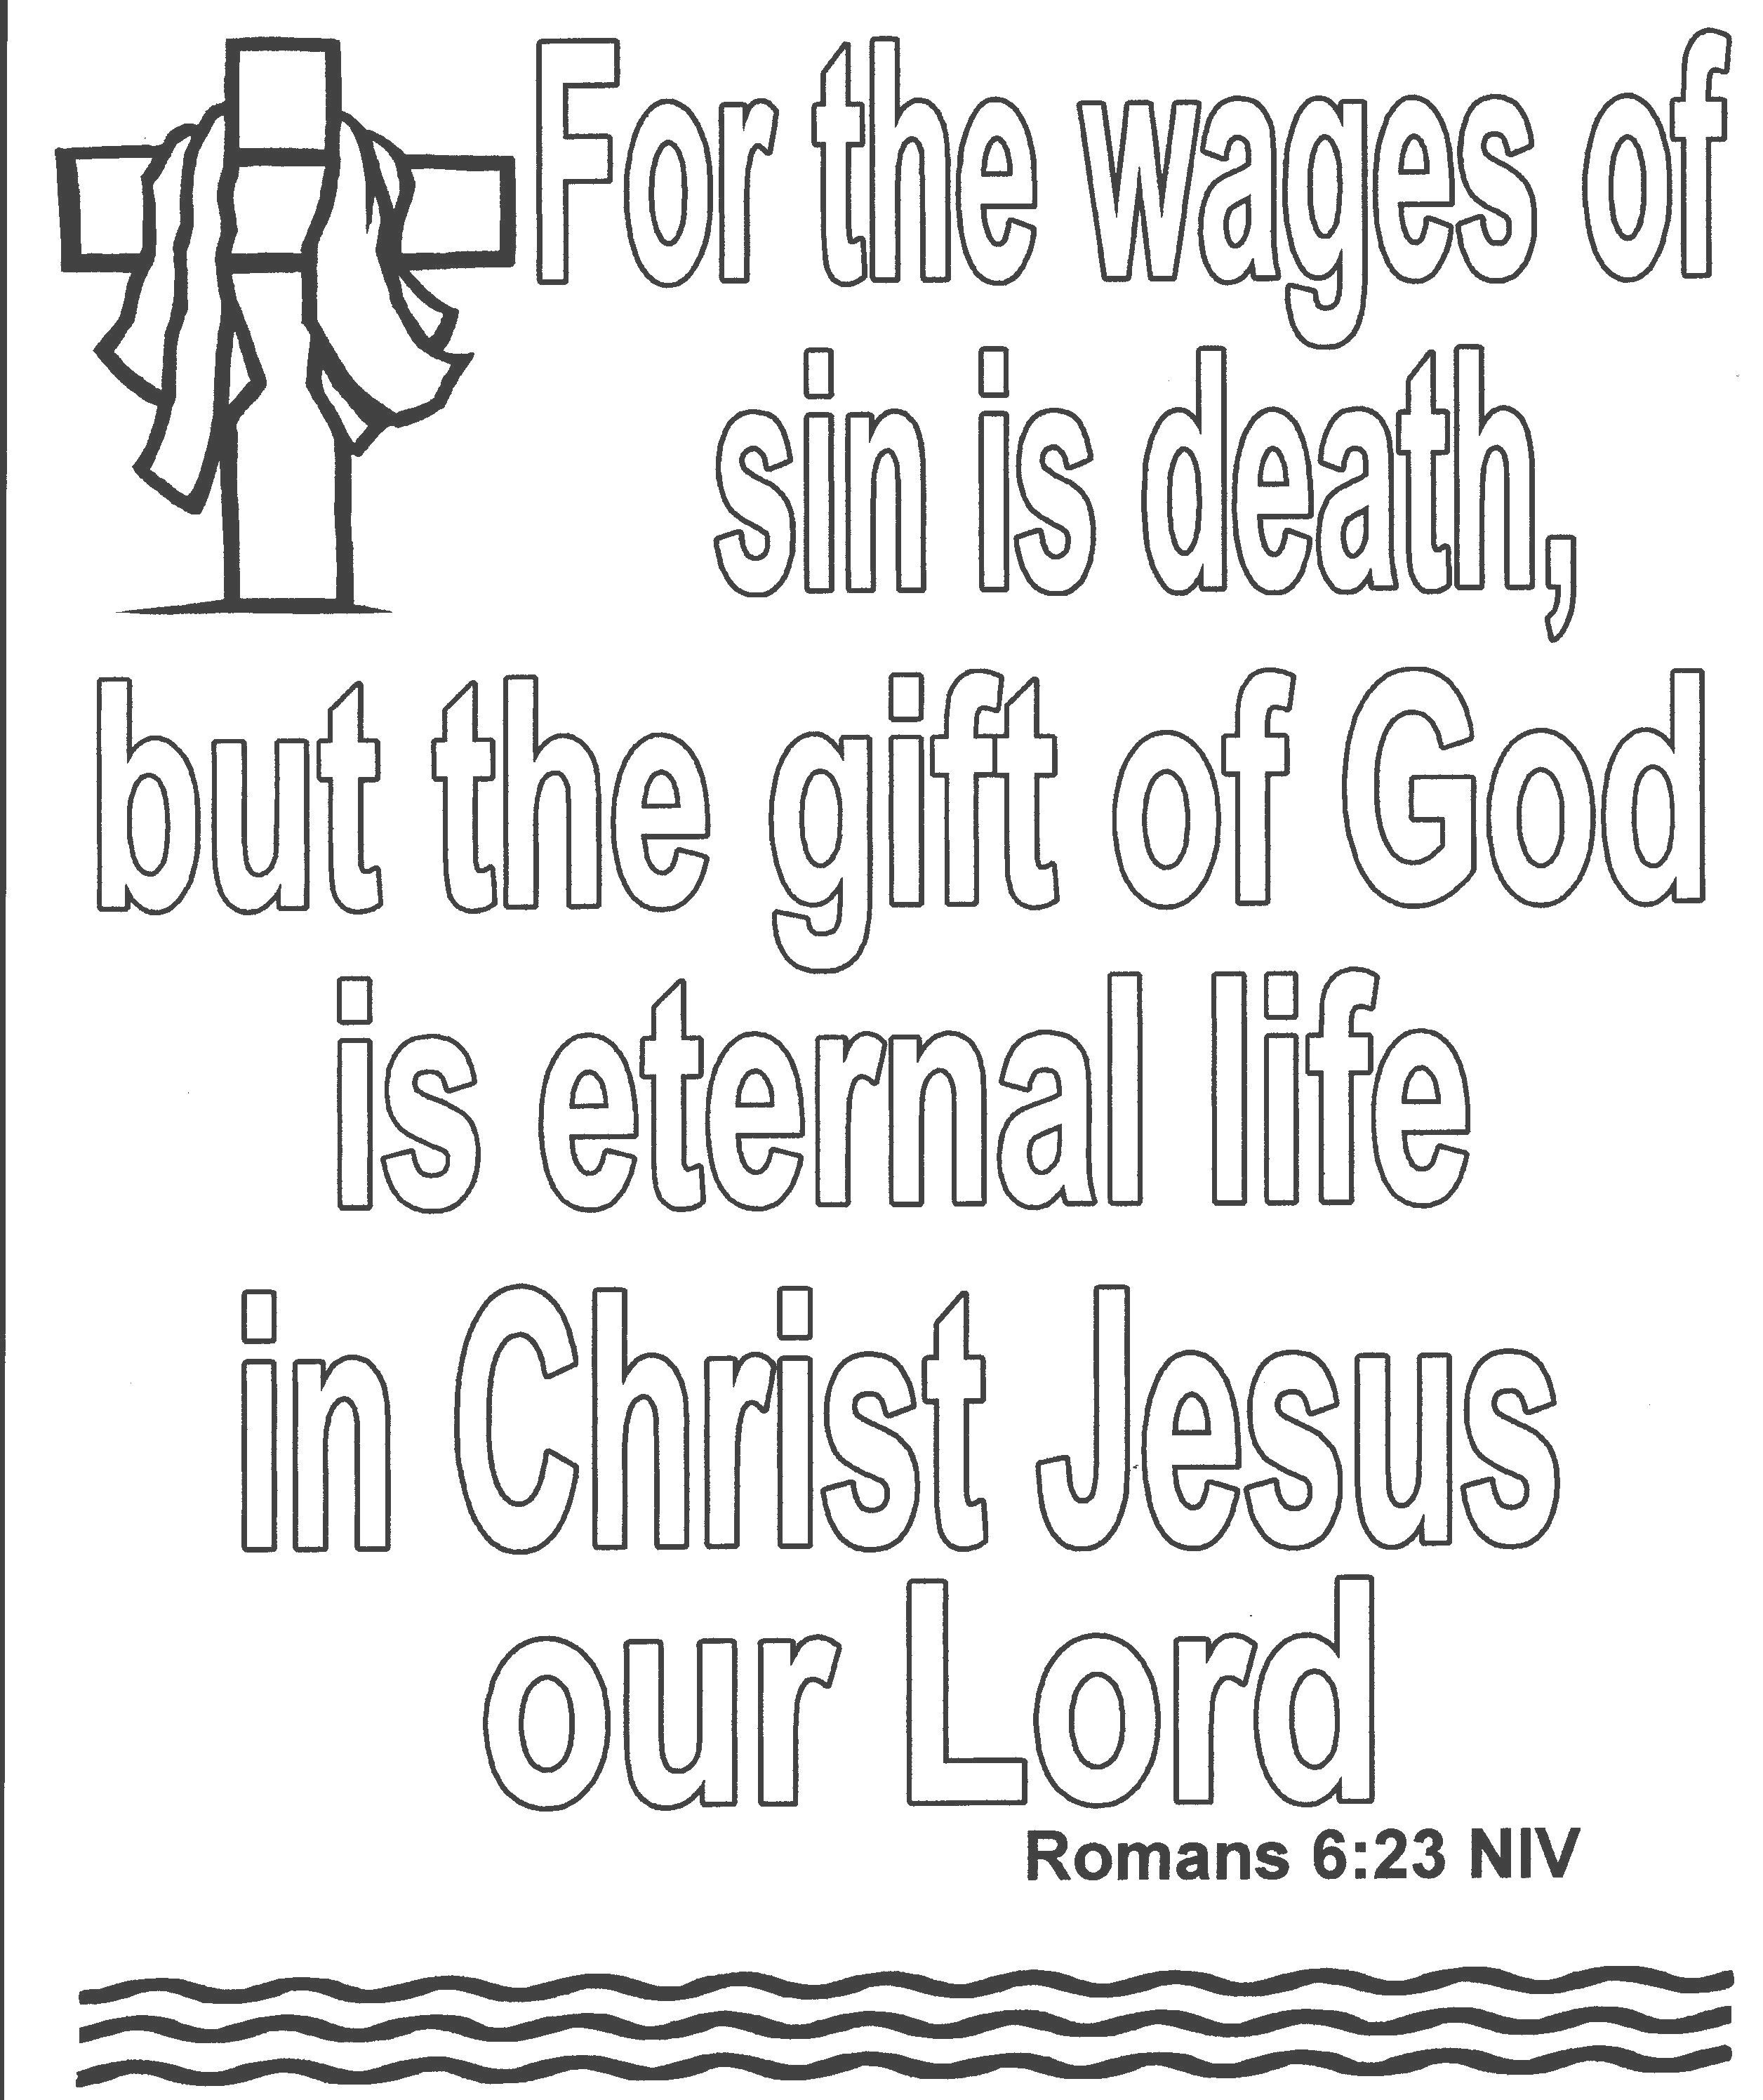 Pin on Bible verses and Christian quotes